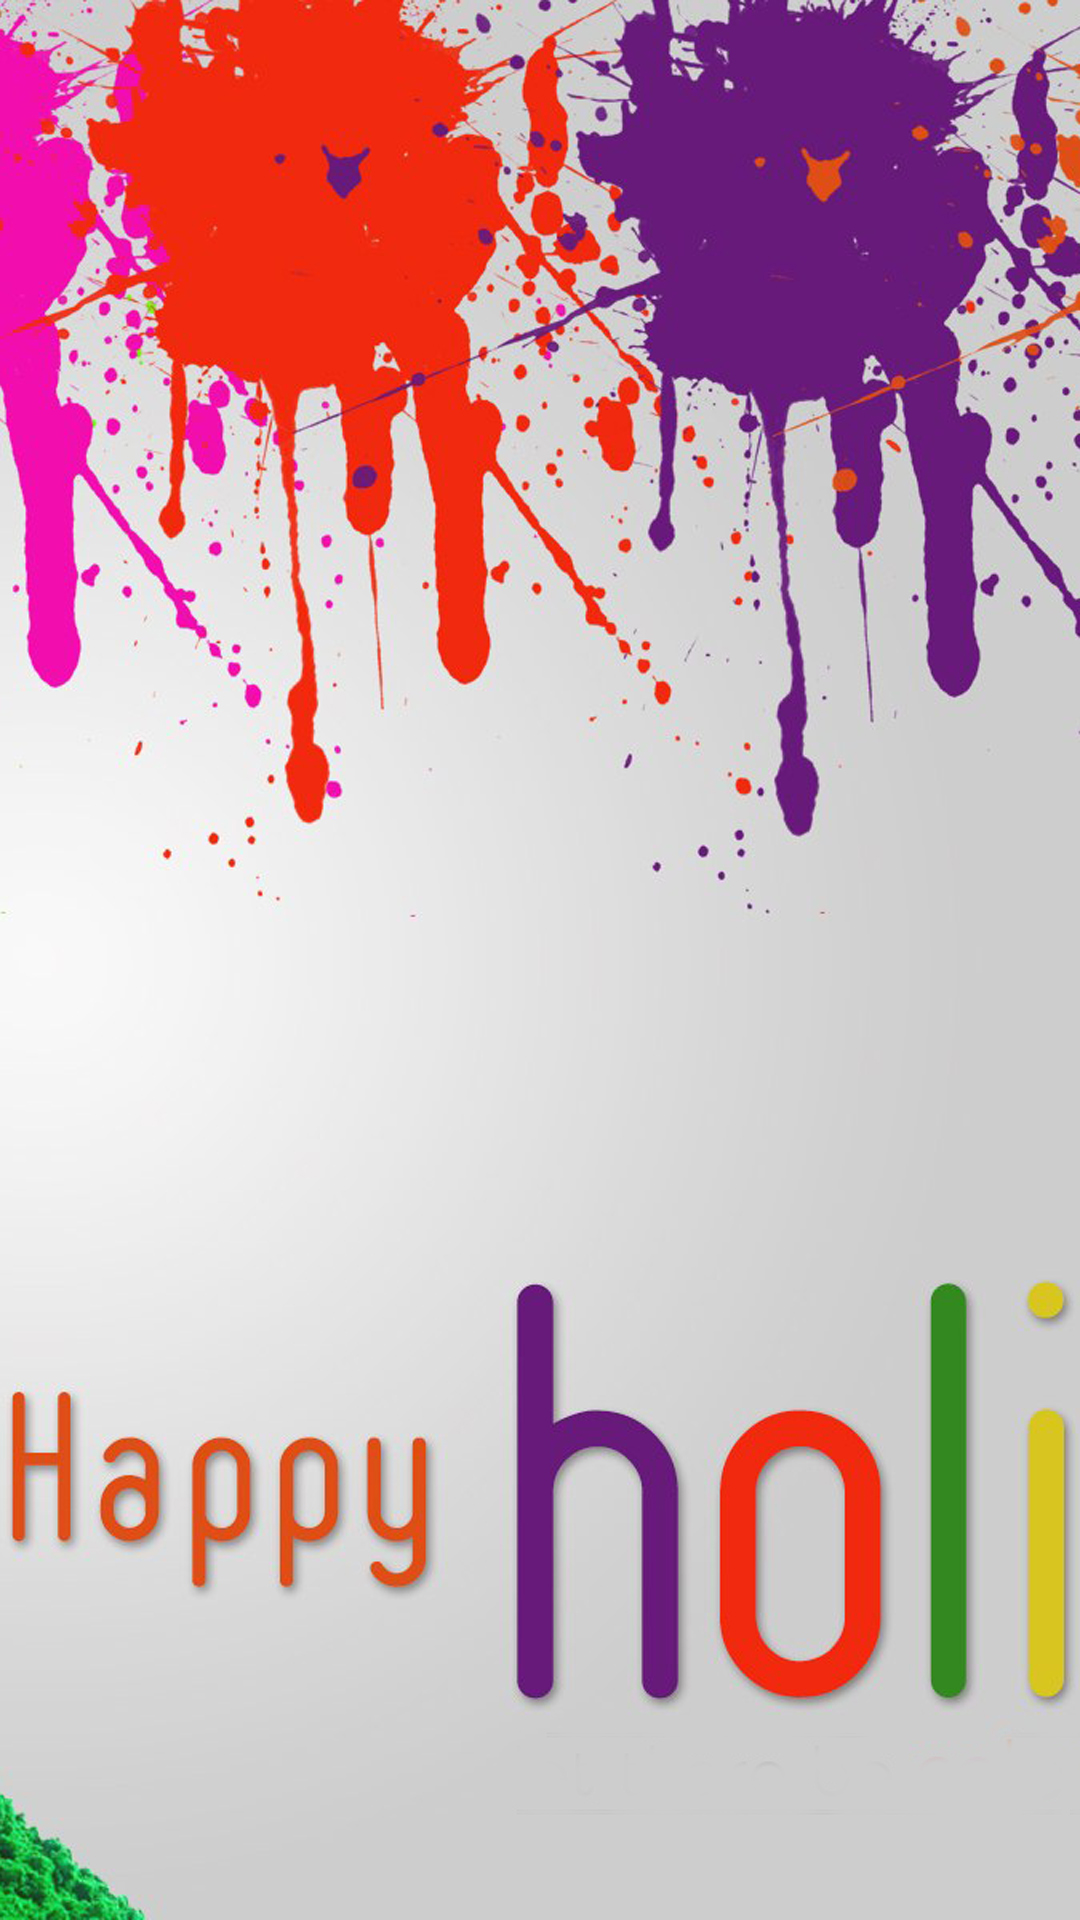 happy holi hd background | mobile wallpaper | phone background